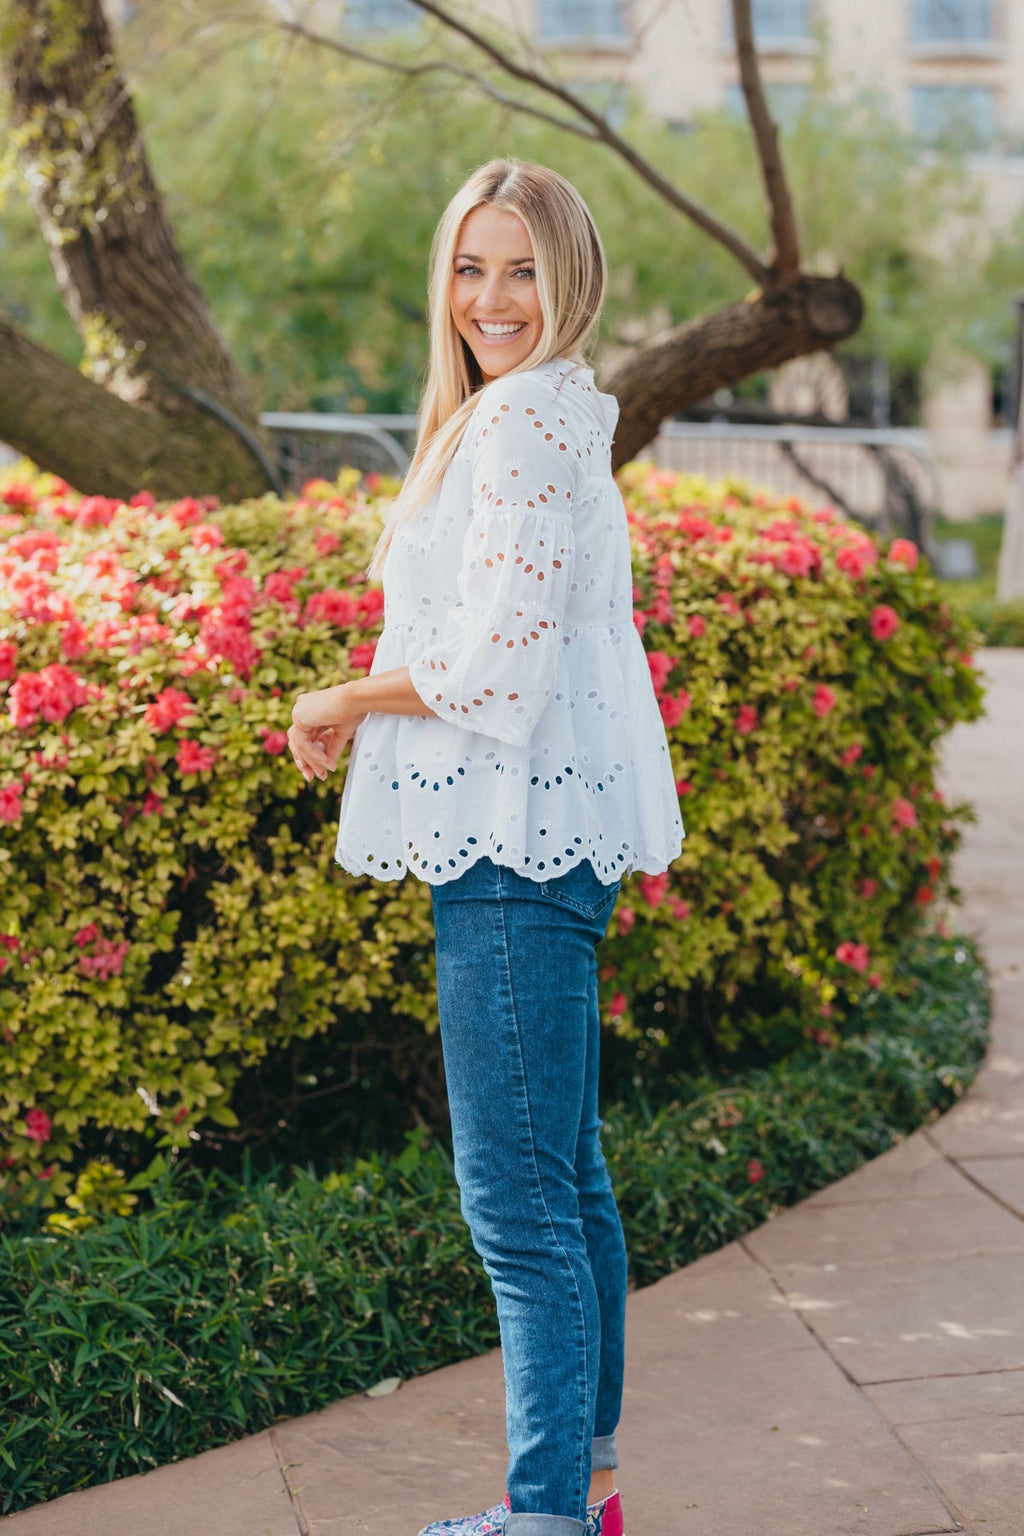 Simply Southern - White Eyelet Lace Top - Monogram Market